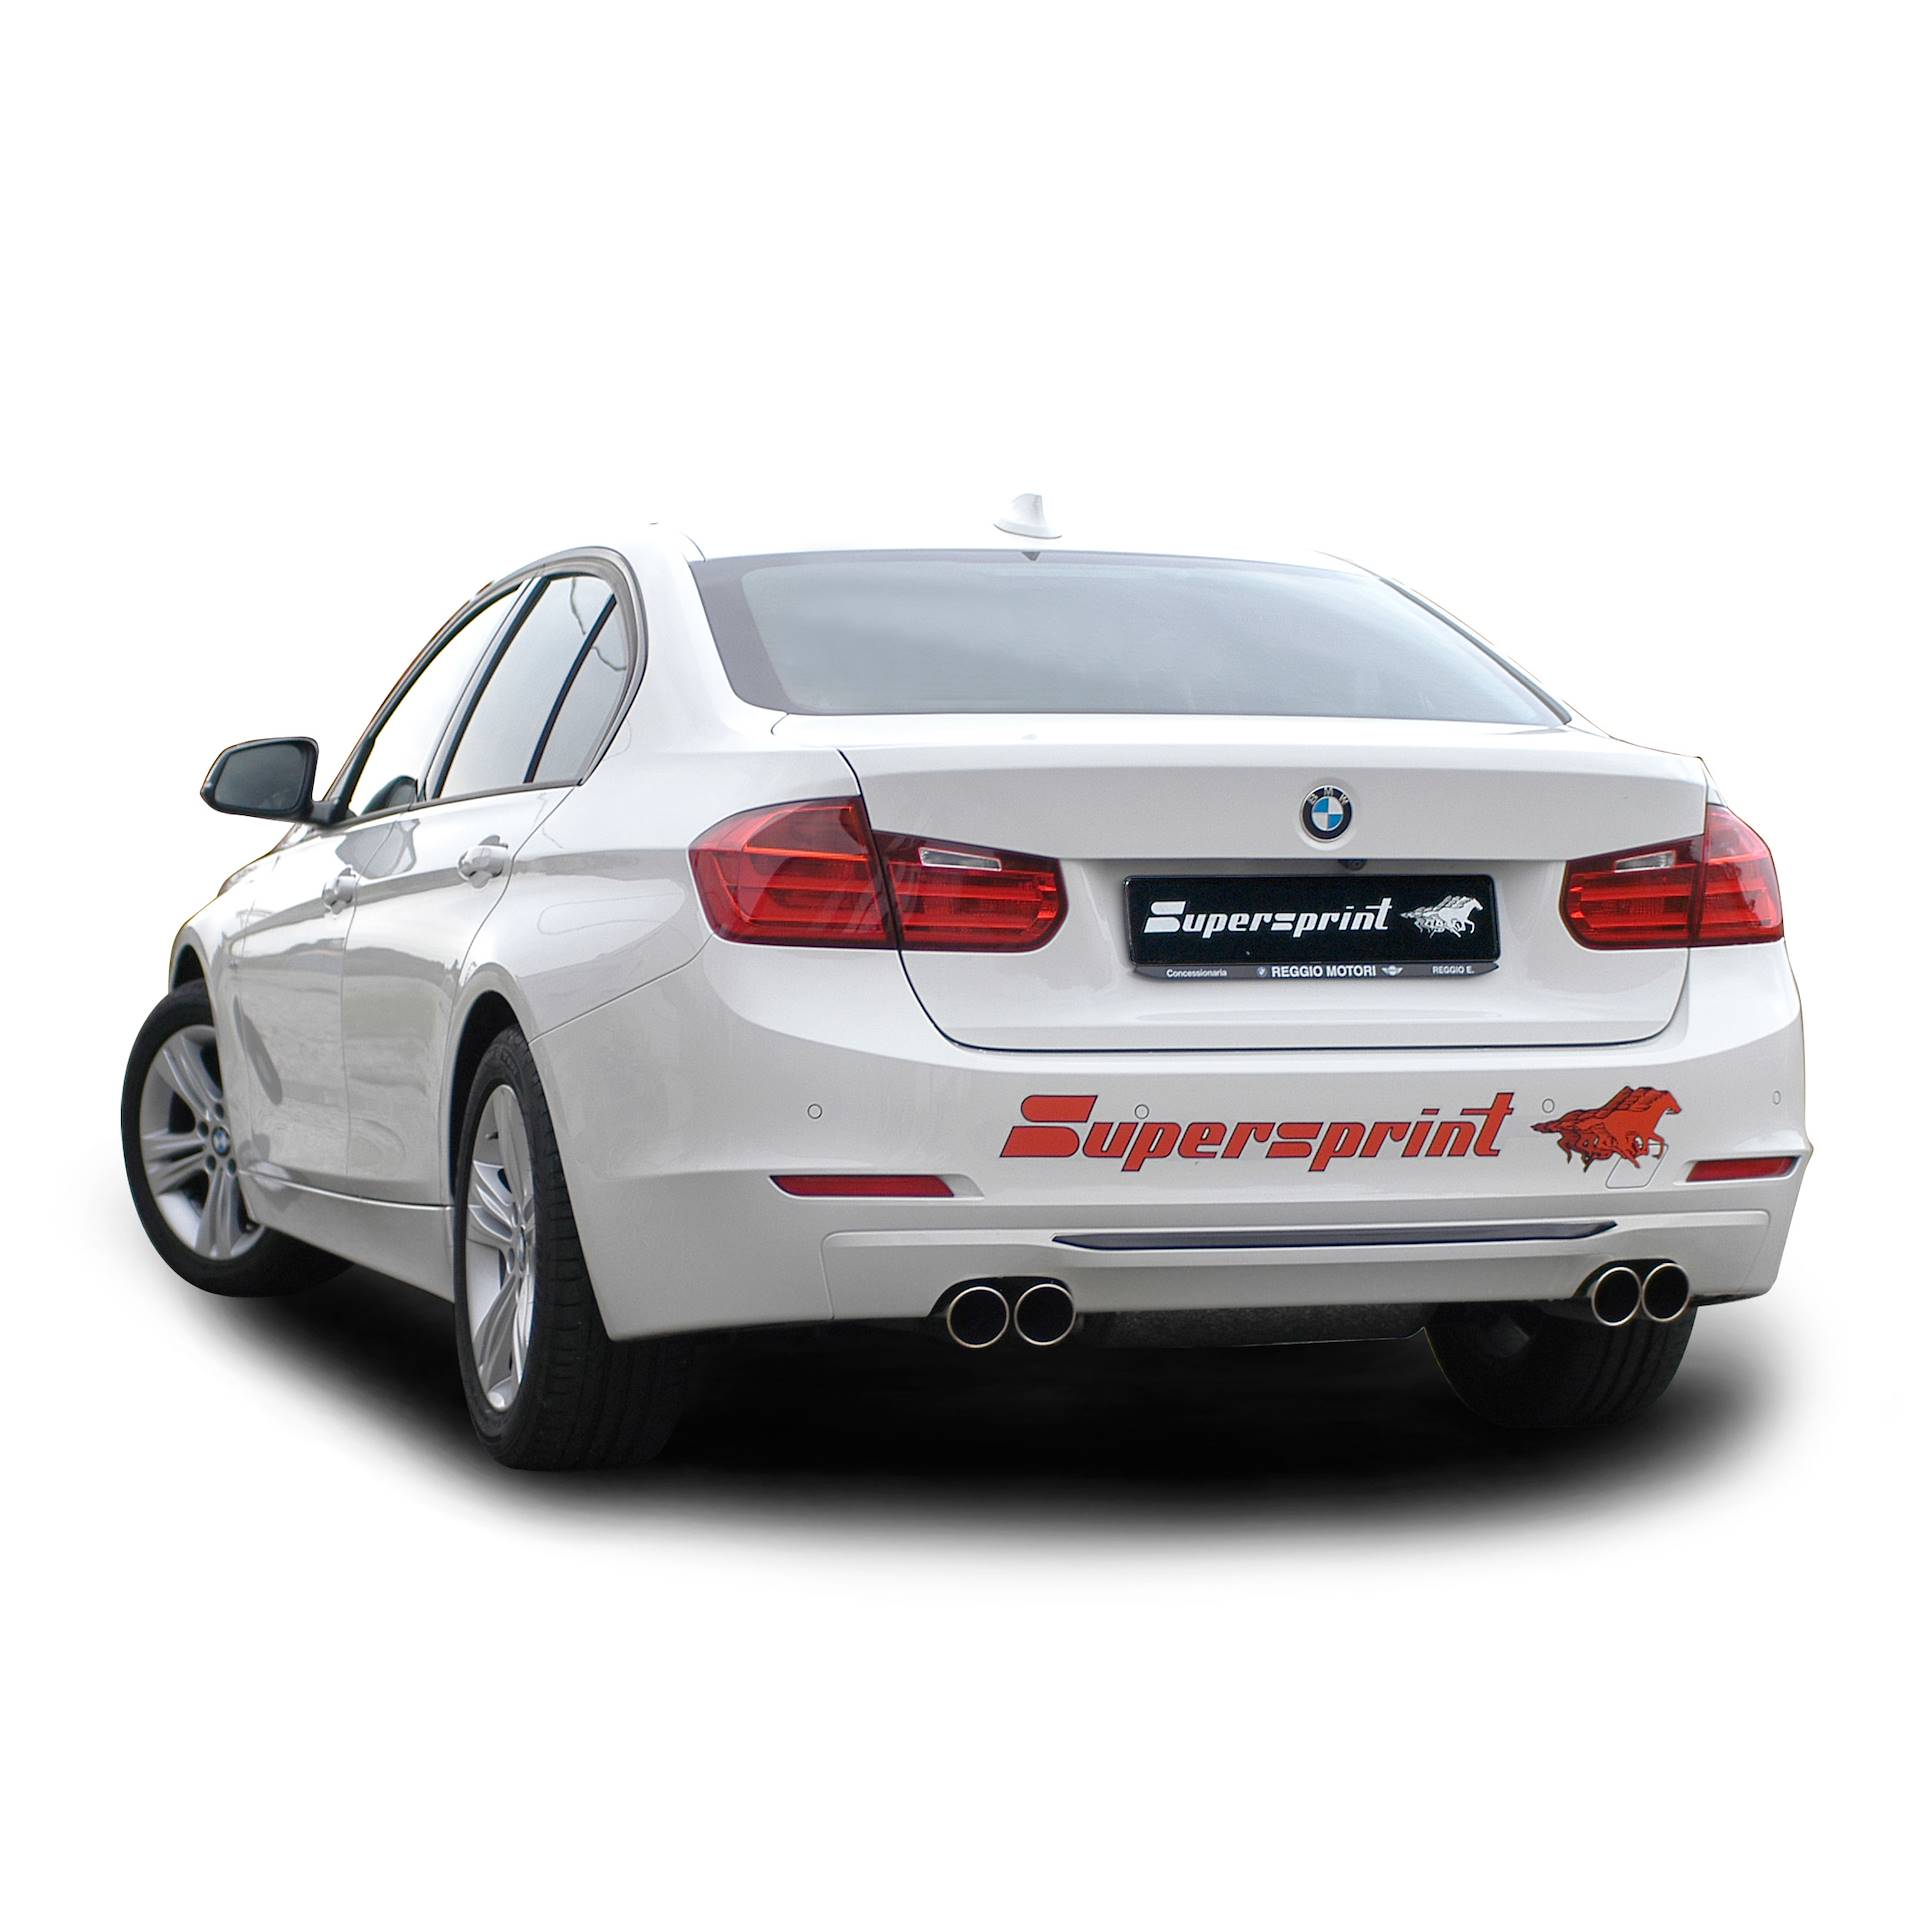 BMW - BMW F30 / F31 (Berline-Break) 318i (3 cil./ B38 -136 Hp) 2015 ->